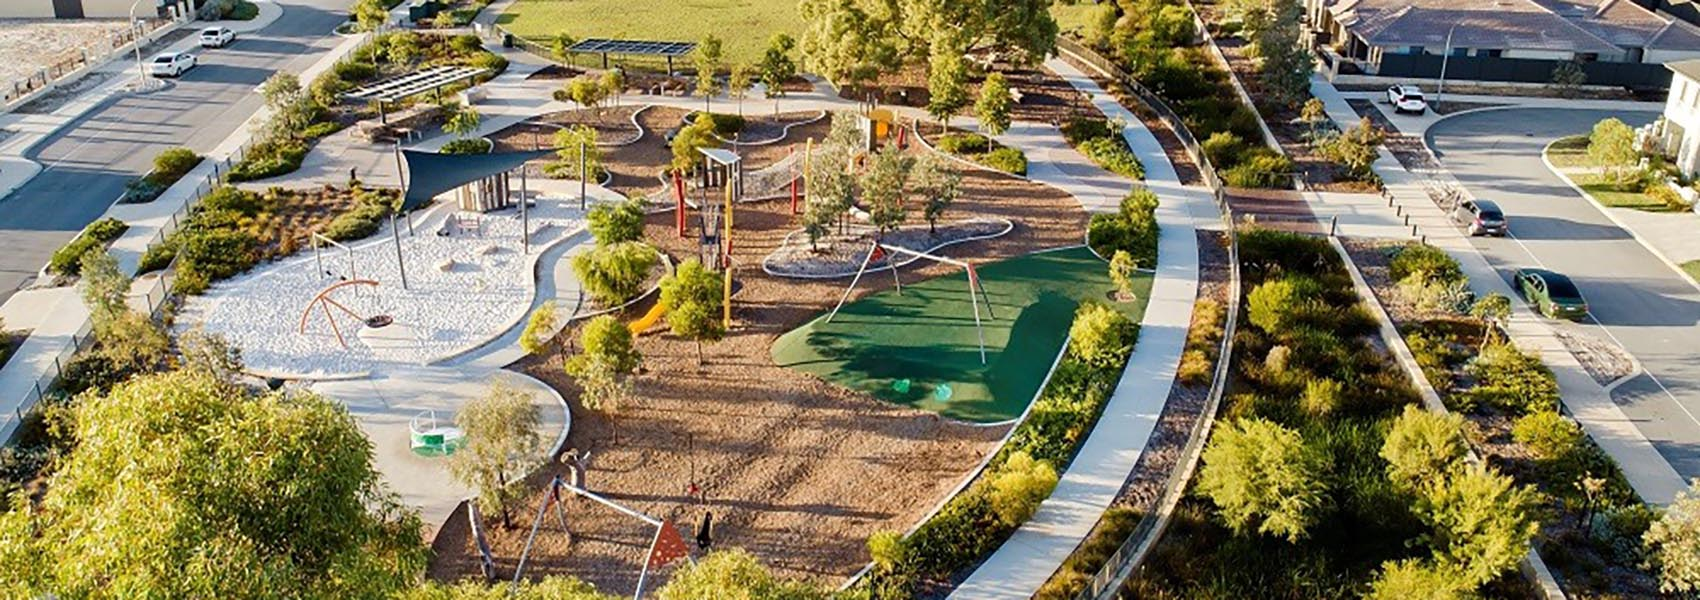 Jungle Park playground in Brabham in the Swan Valley is one of Perth's best parks